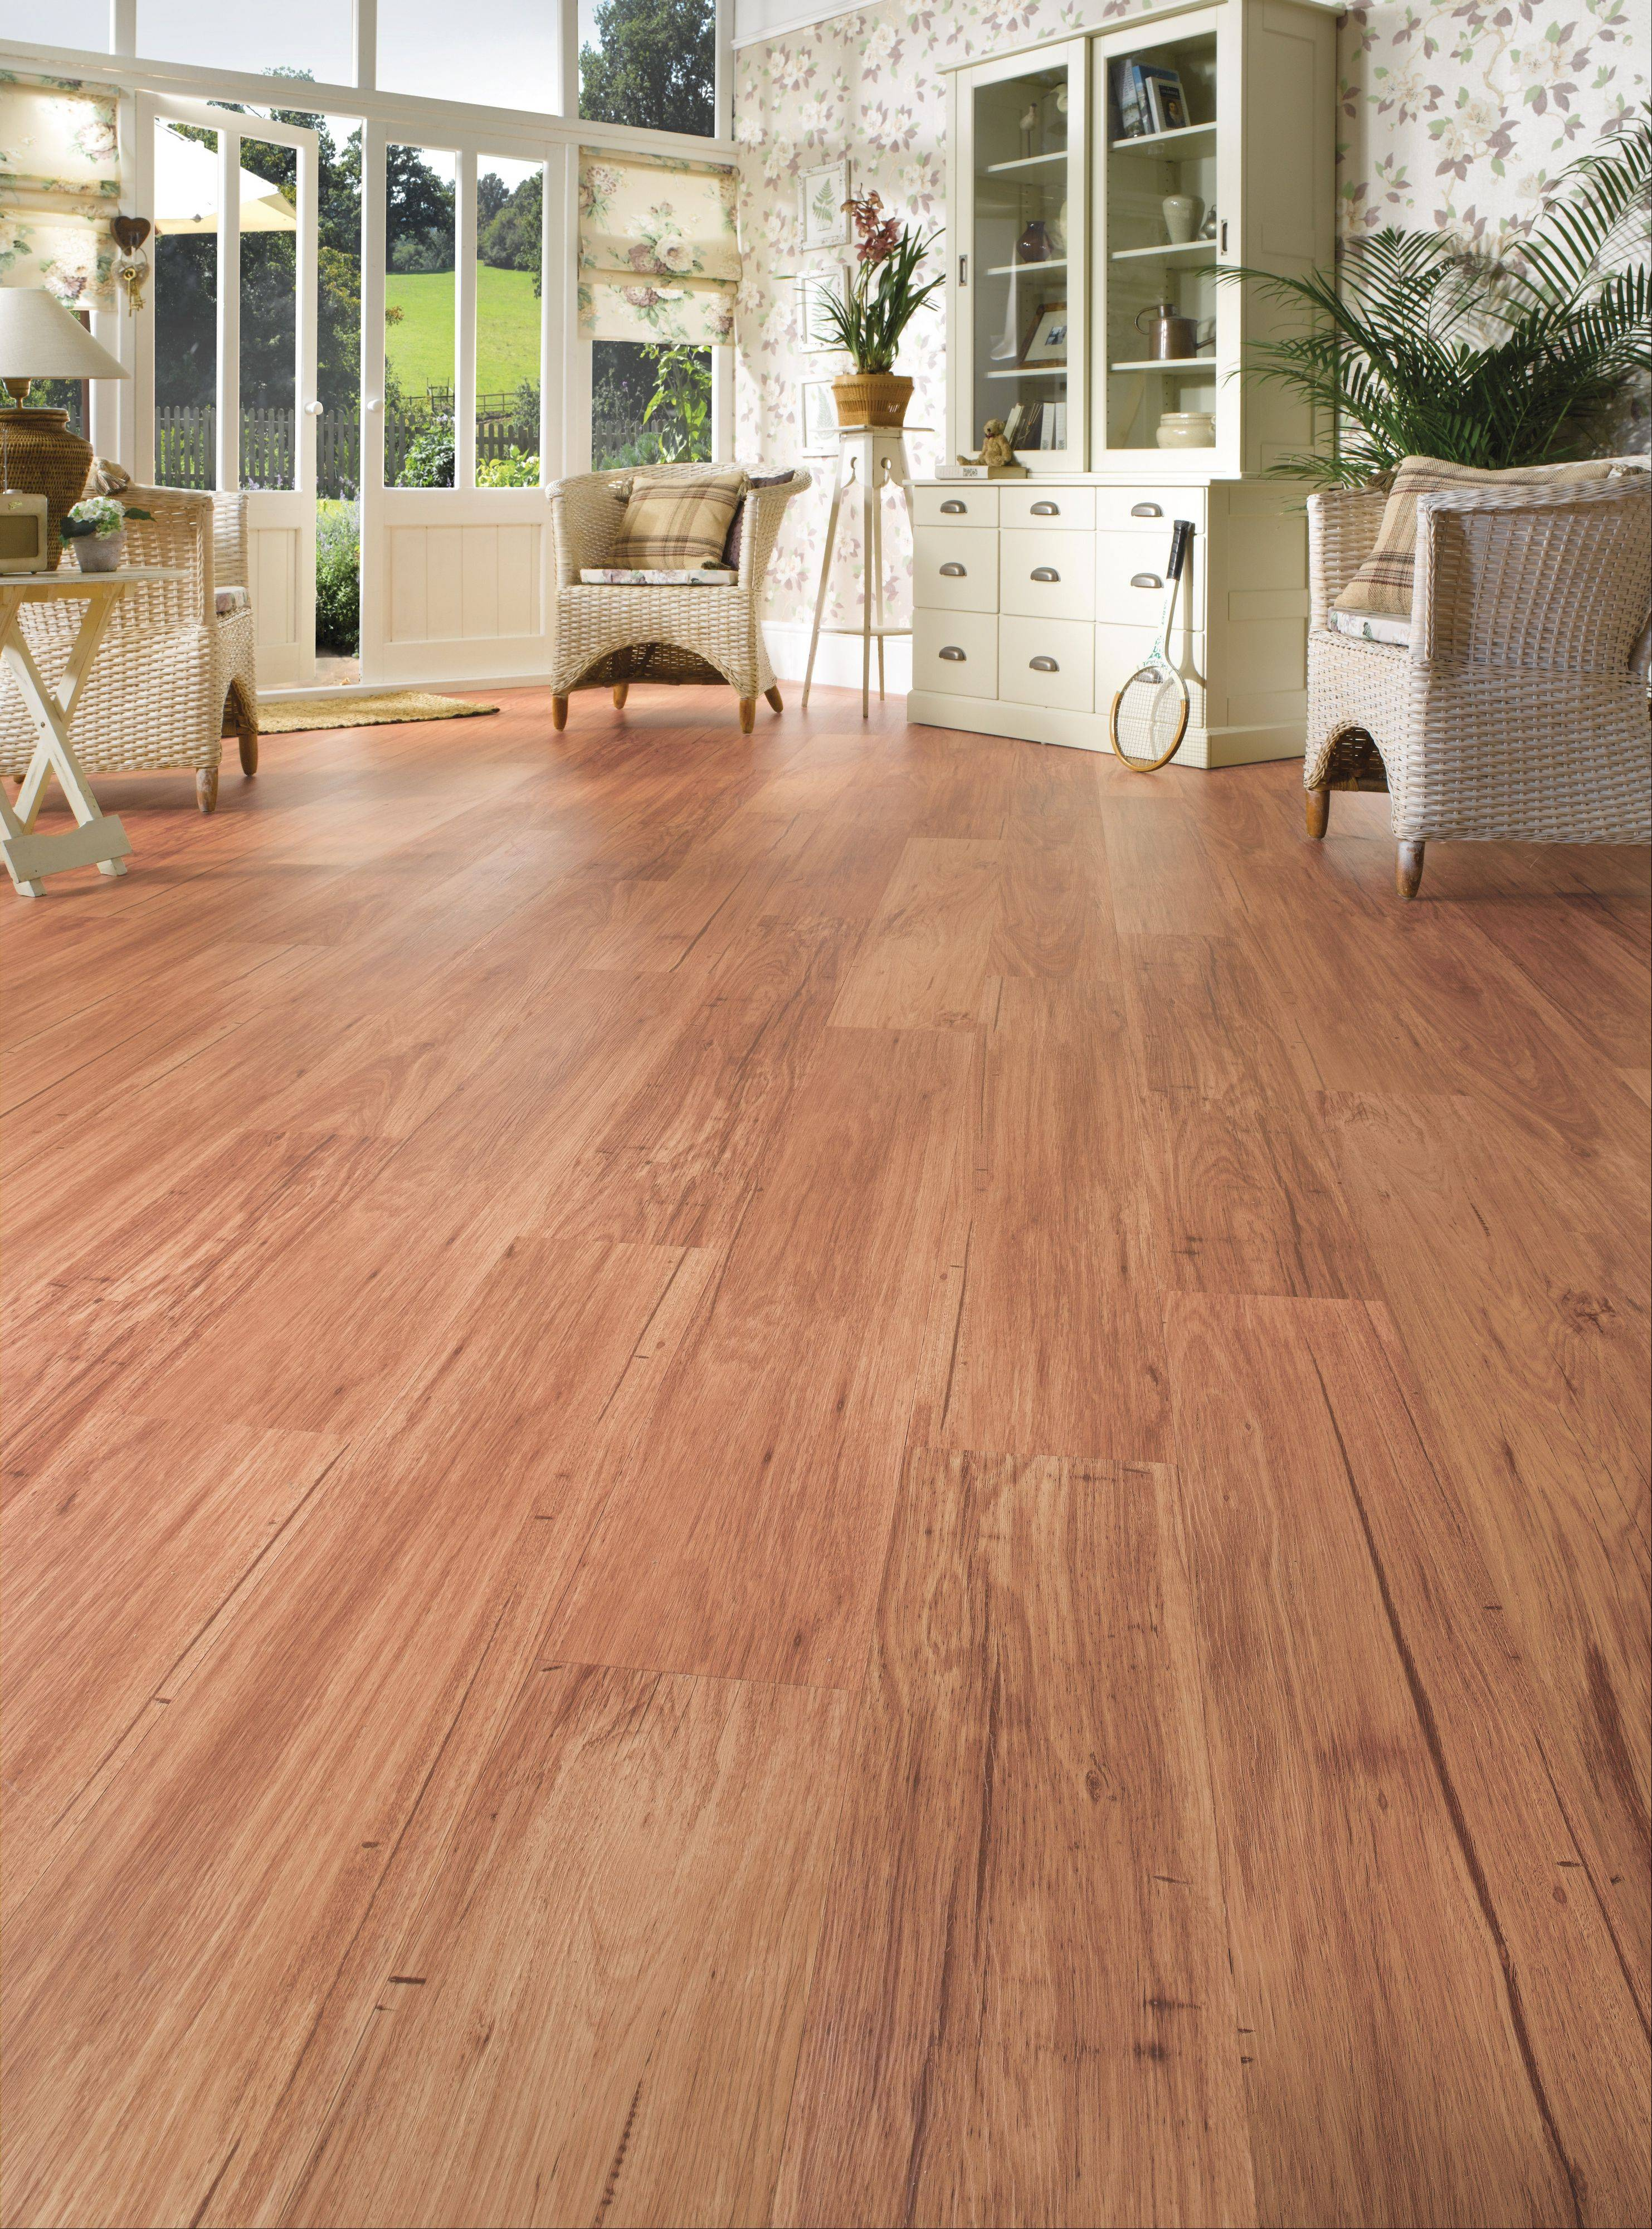 Century Tile, which has 12 stores in the area, has been providing a lot of customers with vinyl tile made by Karndean that has the realistic look of wood or stone.